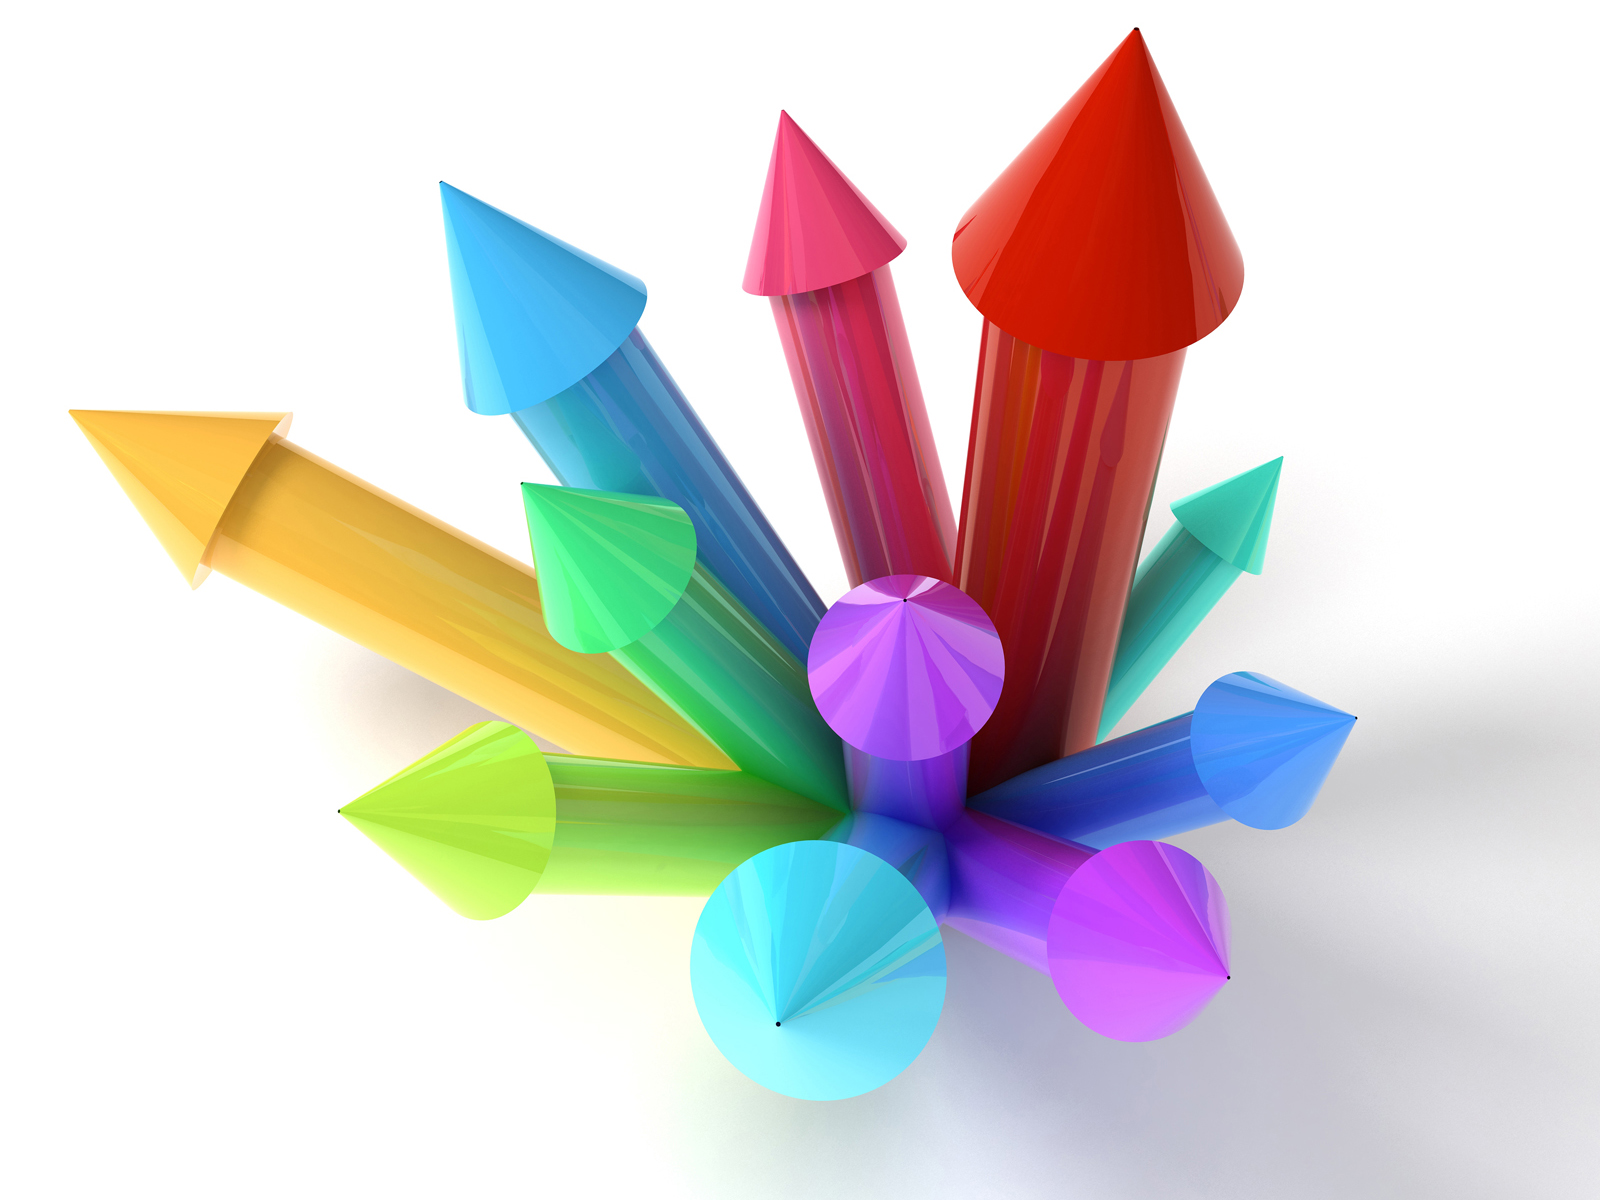 Colored Upwards Arrows Competition Ppt Backgrounds 3d